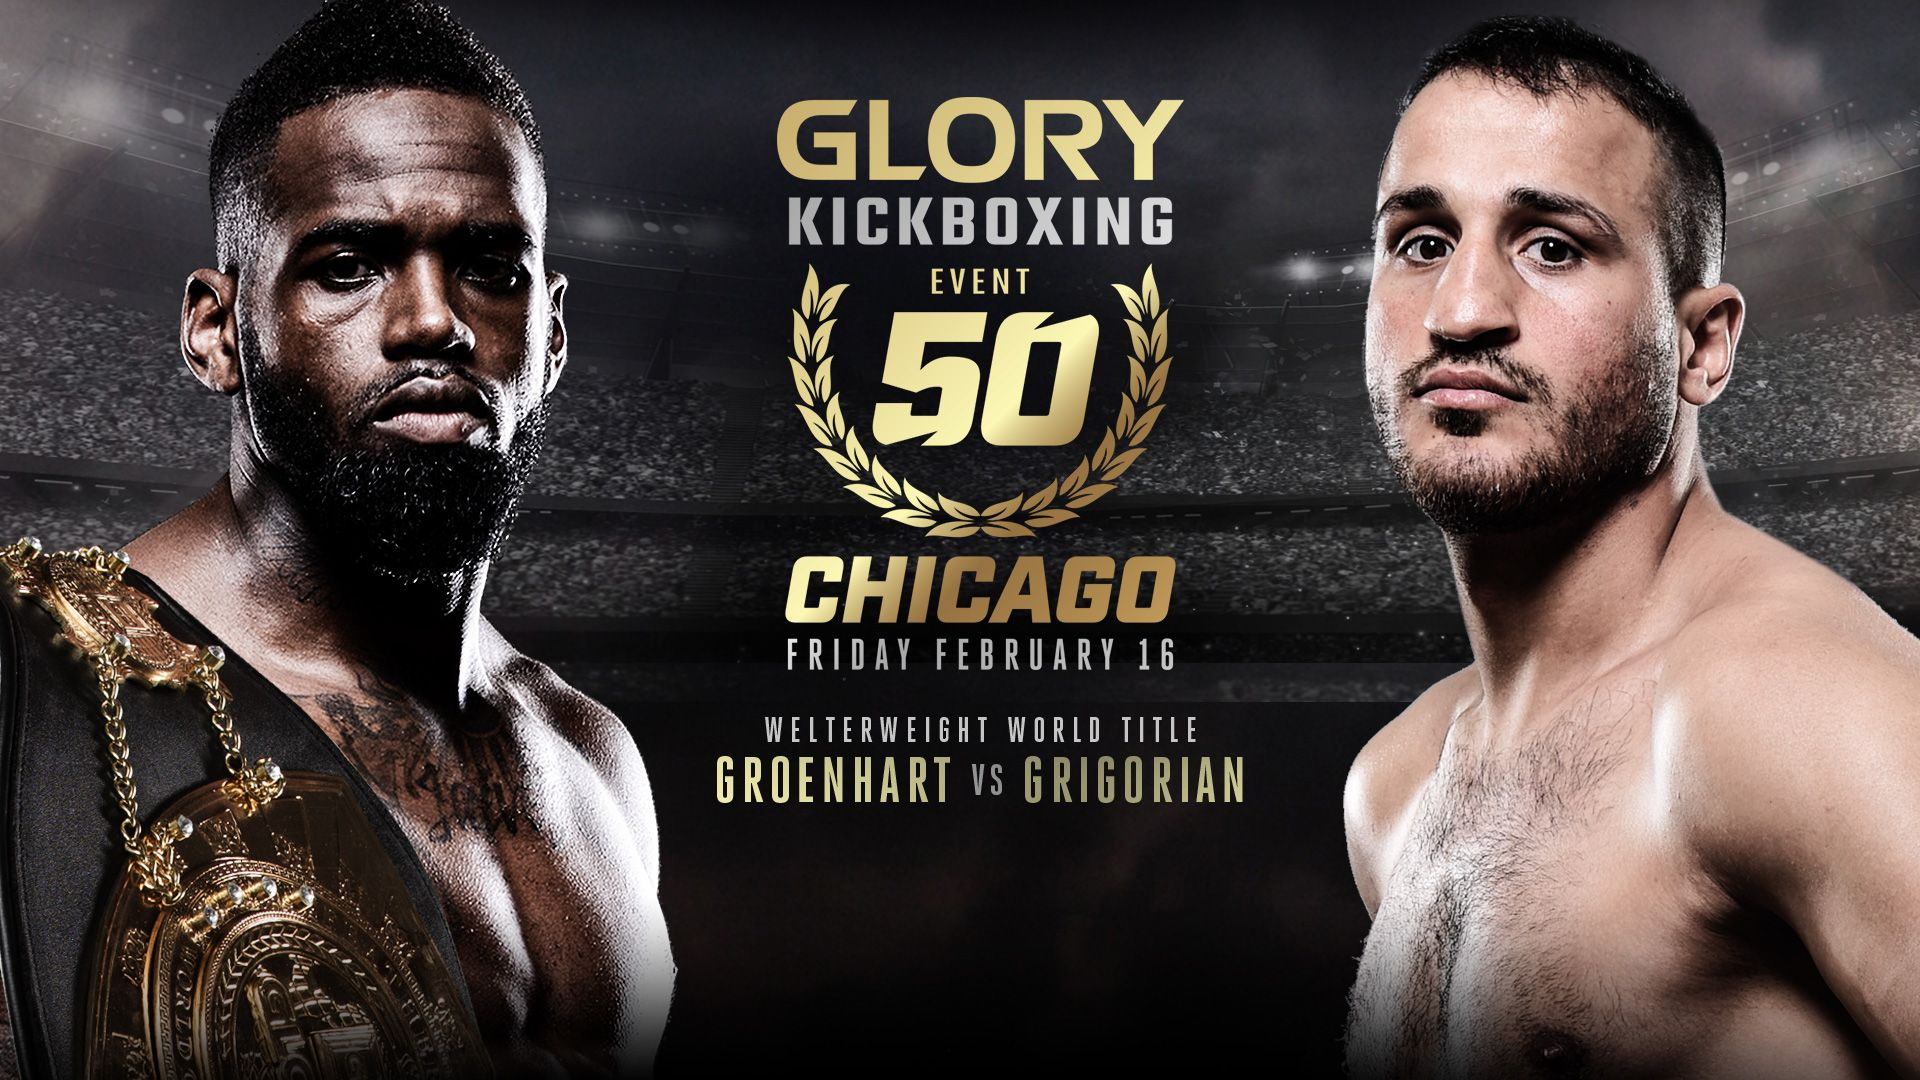 Kickboxing: GLORY 50